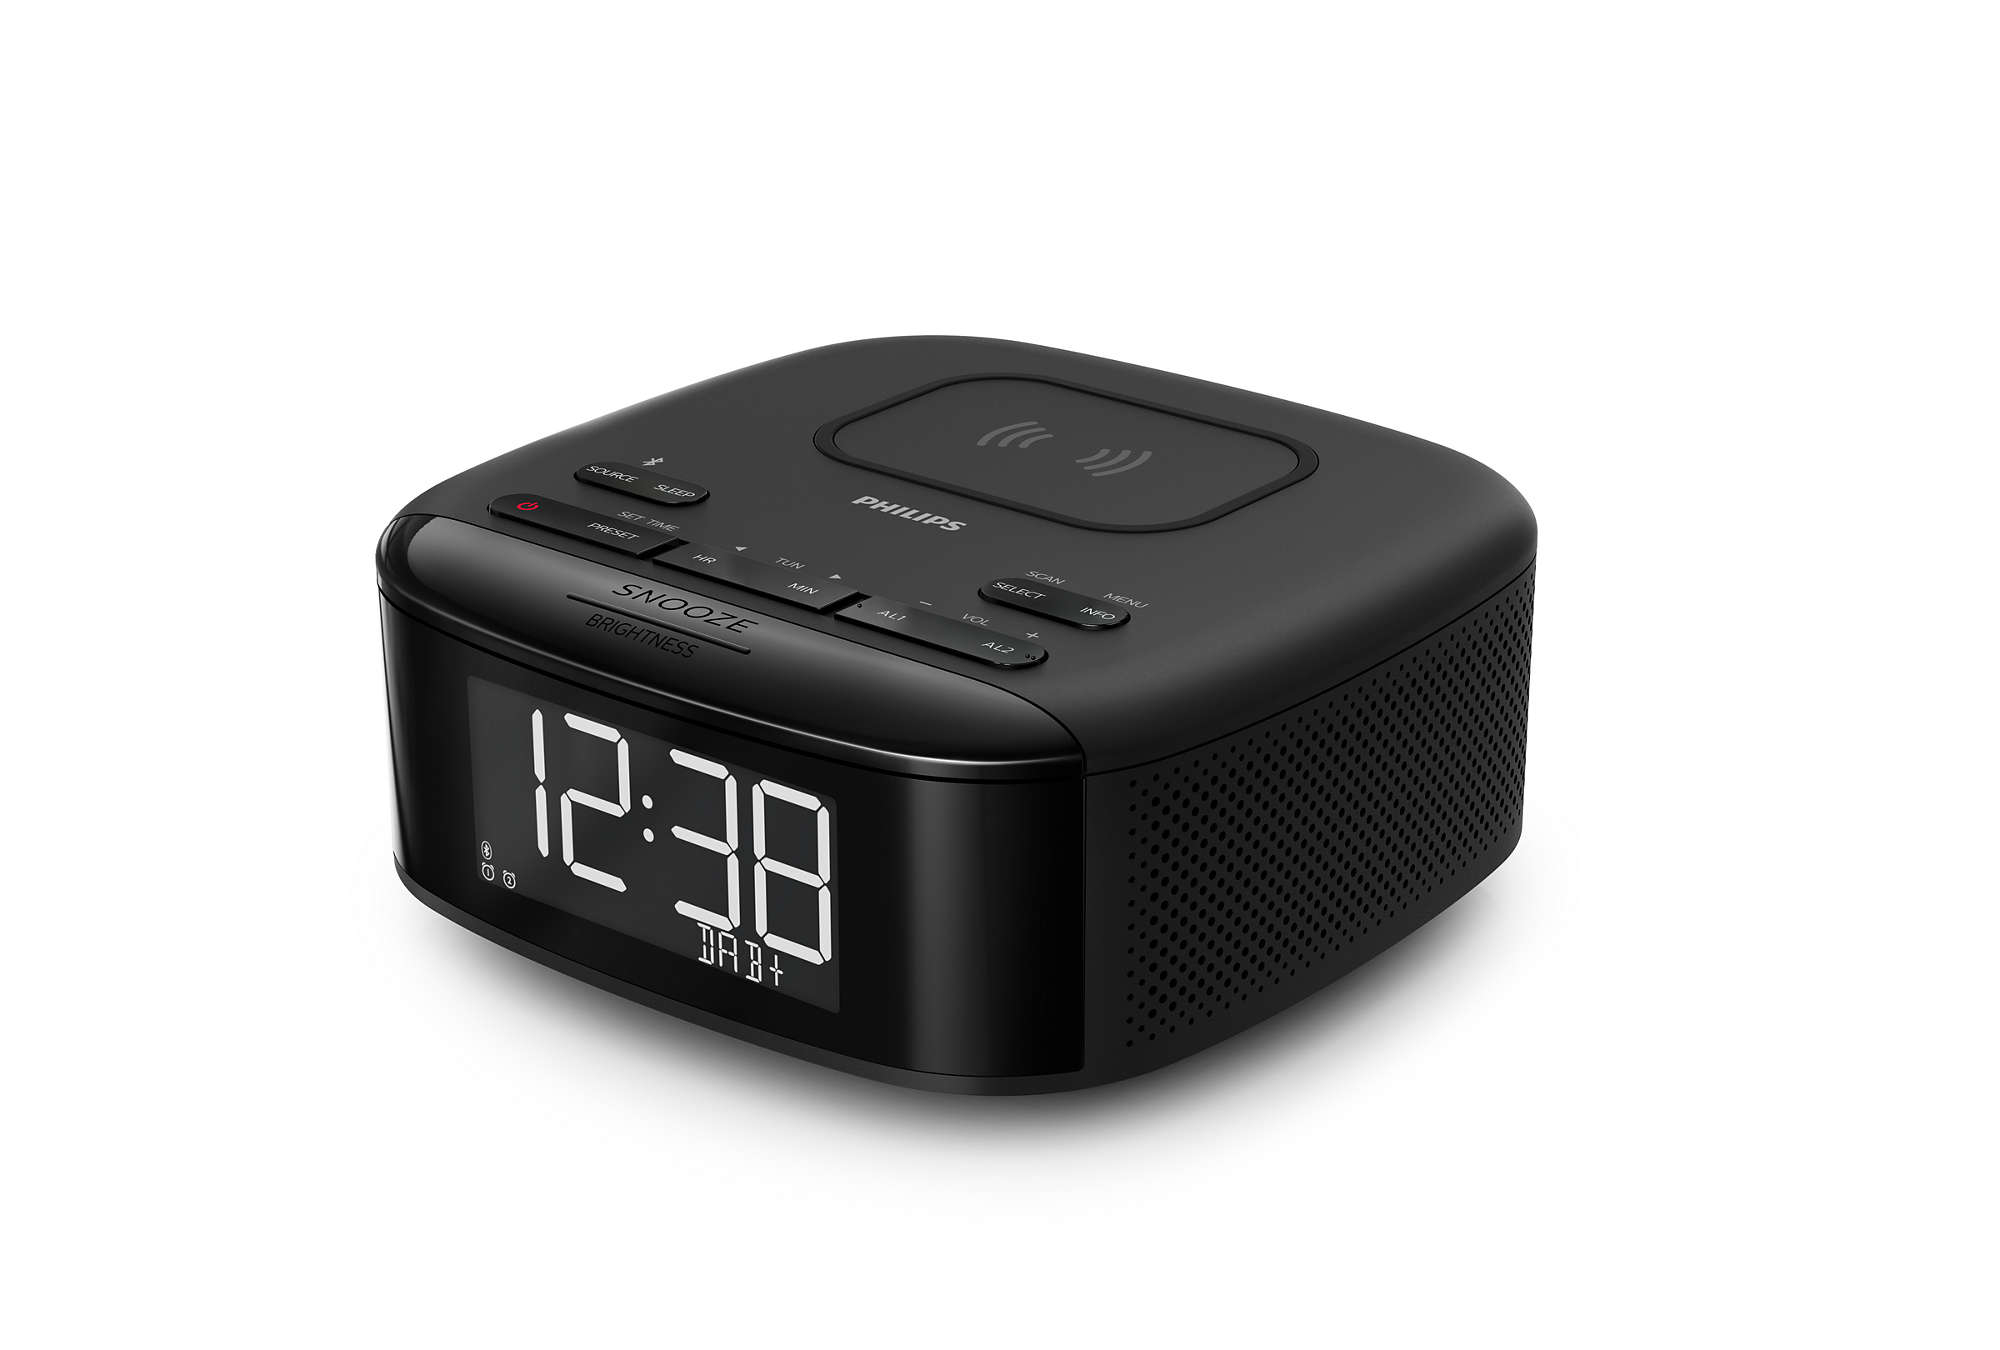 Philips TAR7705 Clock Radio with DAB+ and Wireless Phone Charging